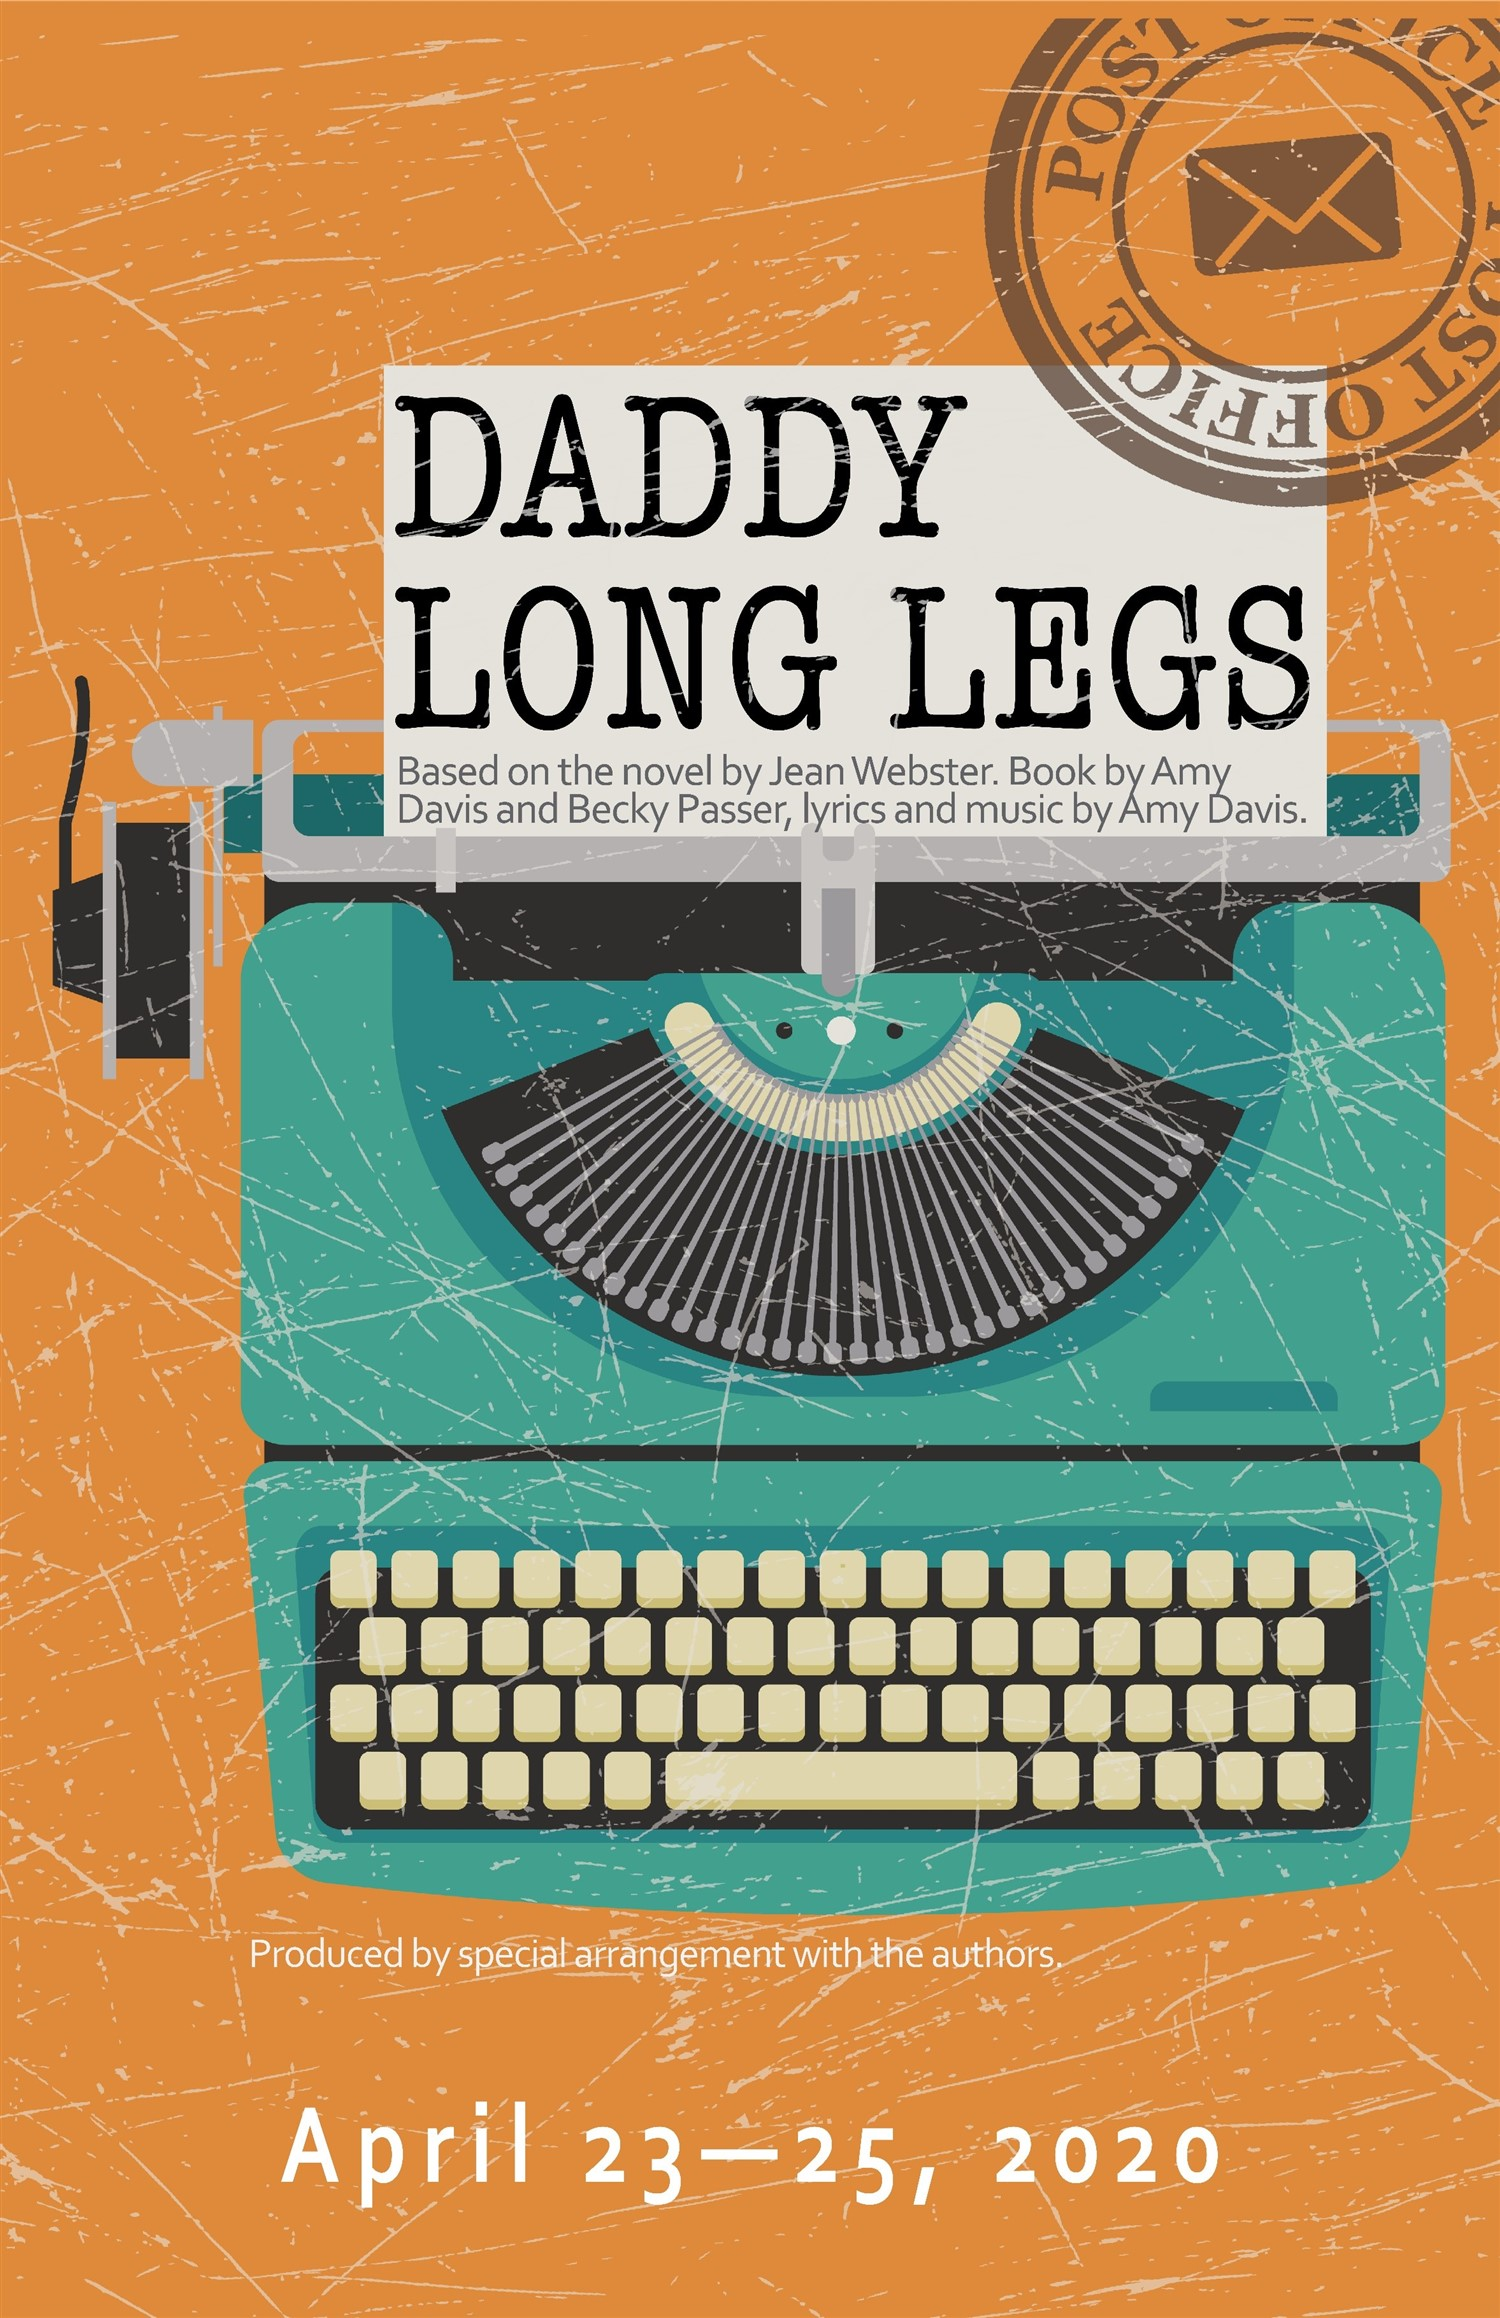 Daddy Long Legs Thursday, April 23, 2020 @ 7:30 pm on Apr 23, 19:30@Spiritual Twist Productions - Pick a seat, Buy tickets and Get information on Spiritual Twist Productions tickets.spiritualtwist.com